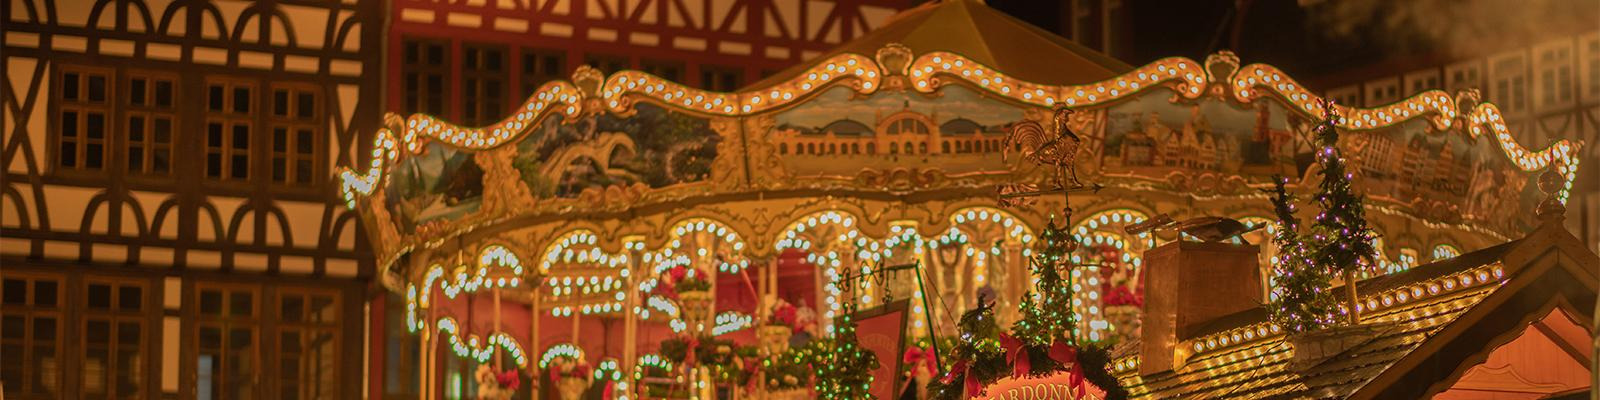 Carousel and Christmas decorations in old European square